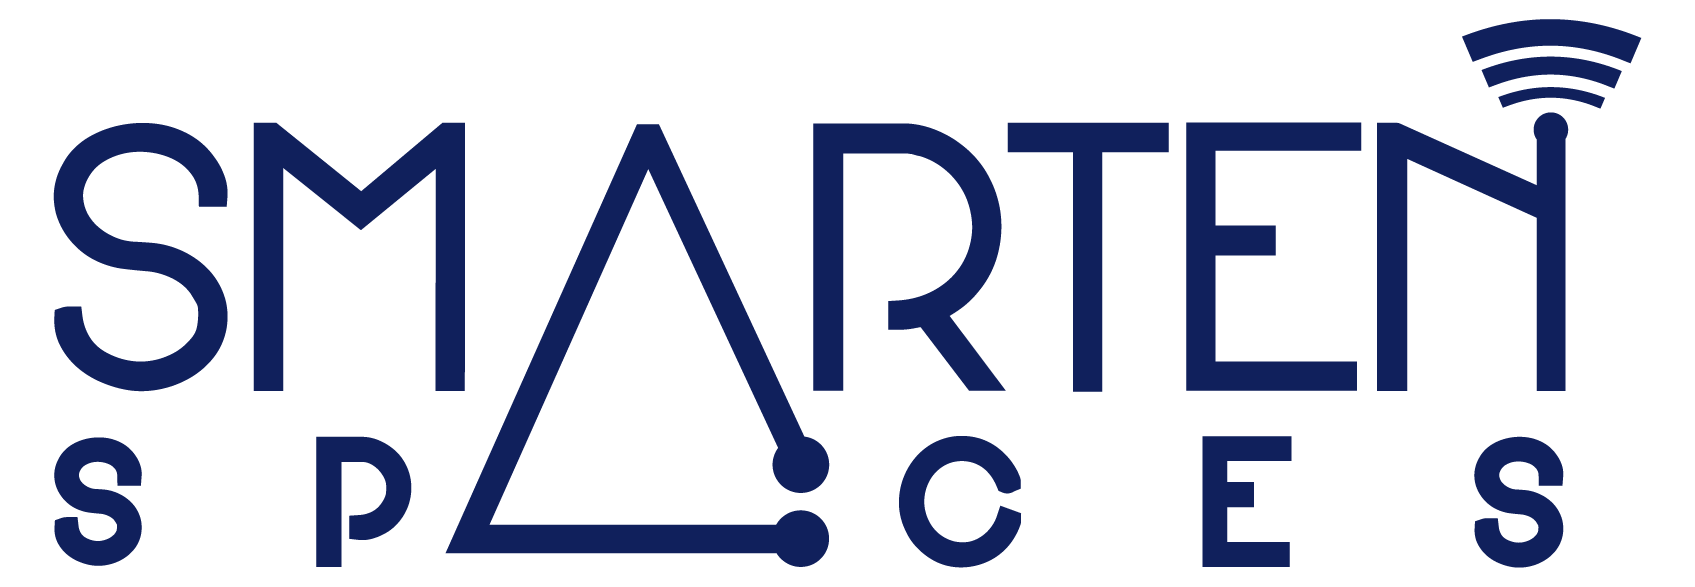 Smarten Spaces Logo 01